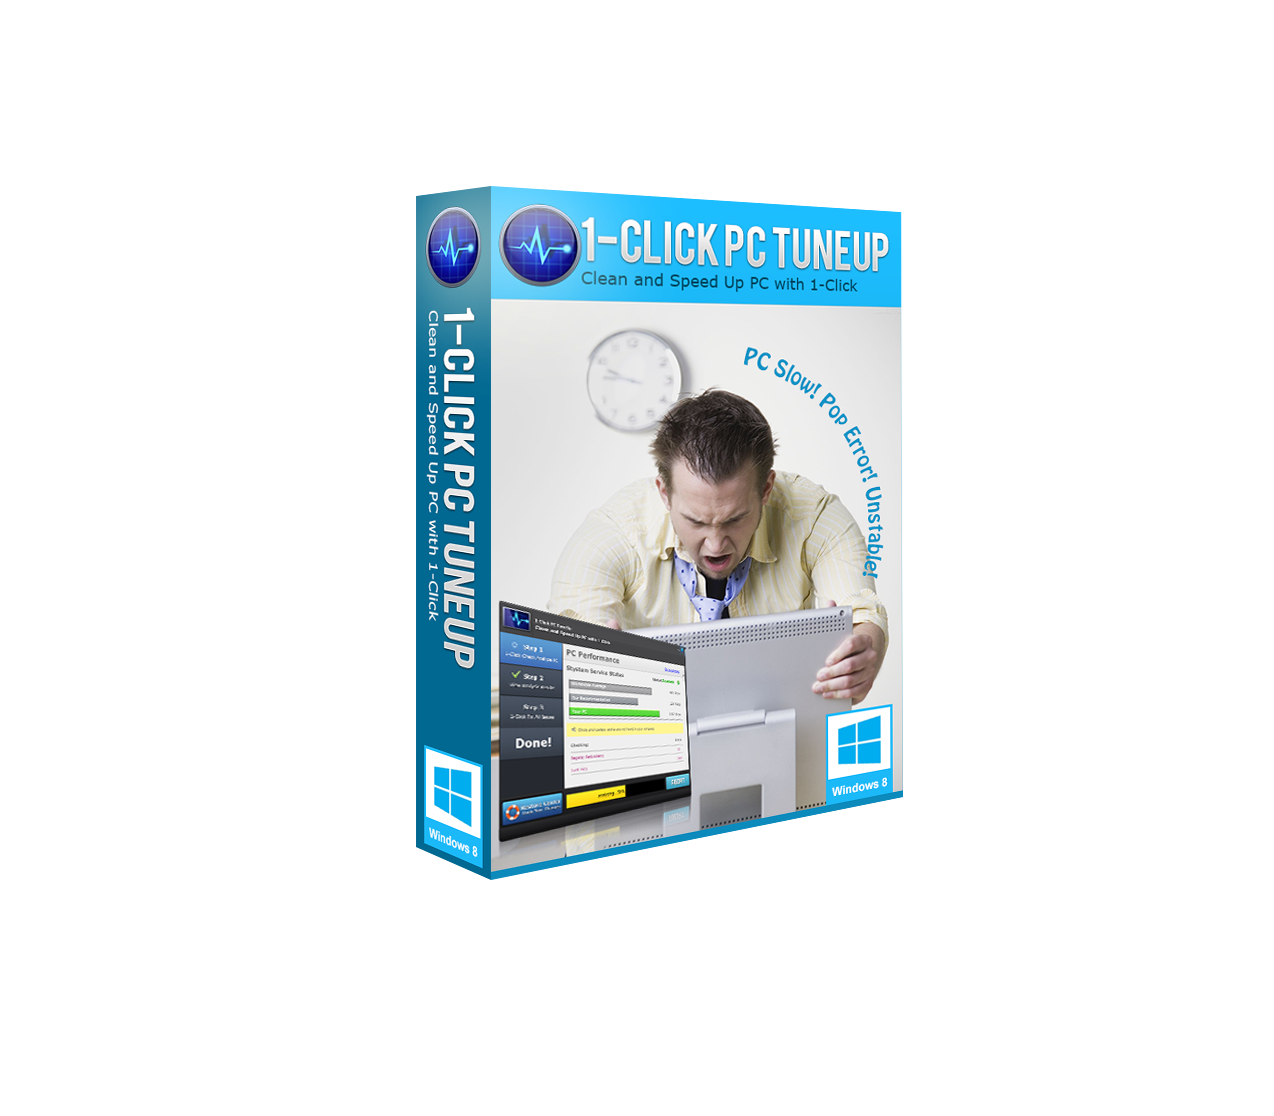 vitarsoft-co-ltd-1-click-pc-tuneup-1-pc-logo.png